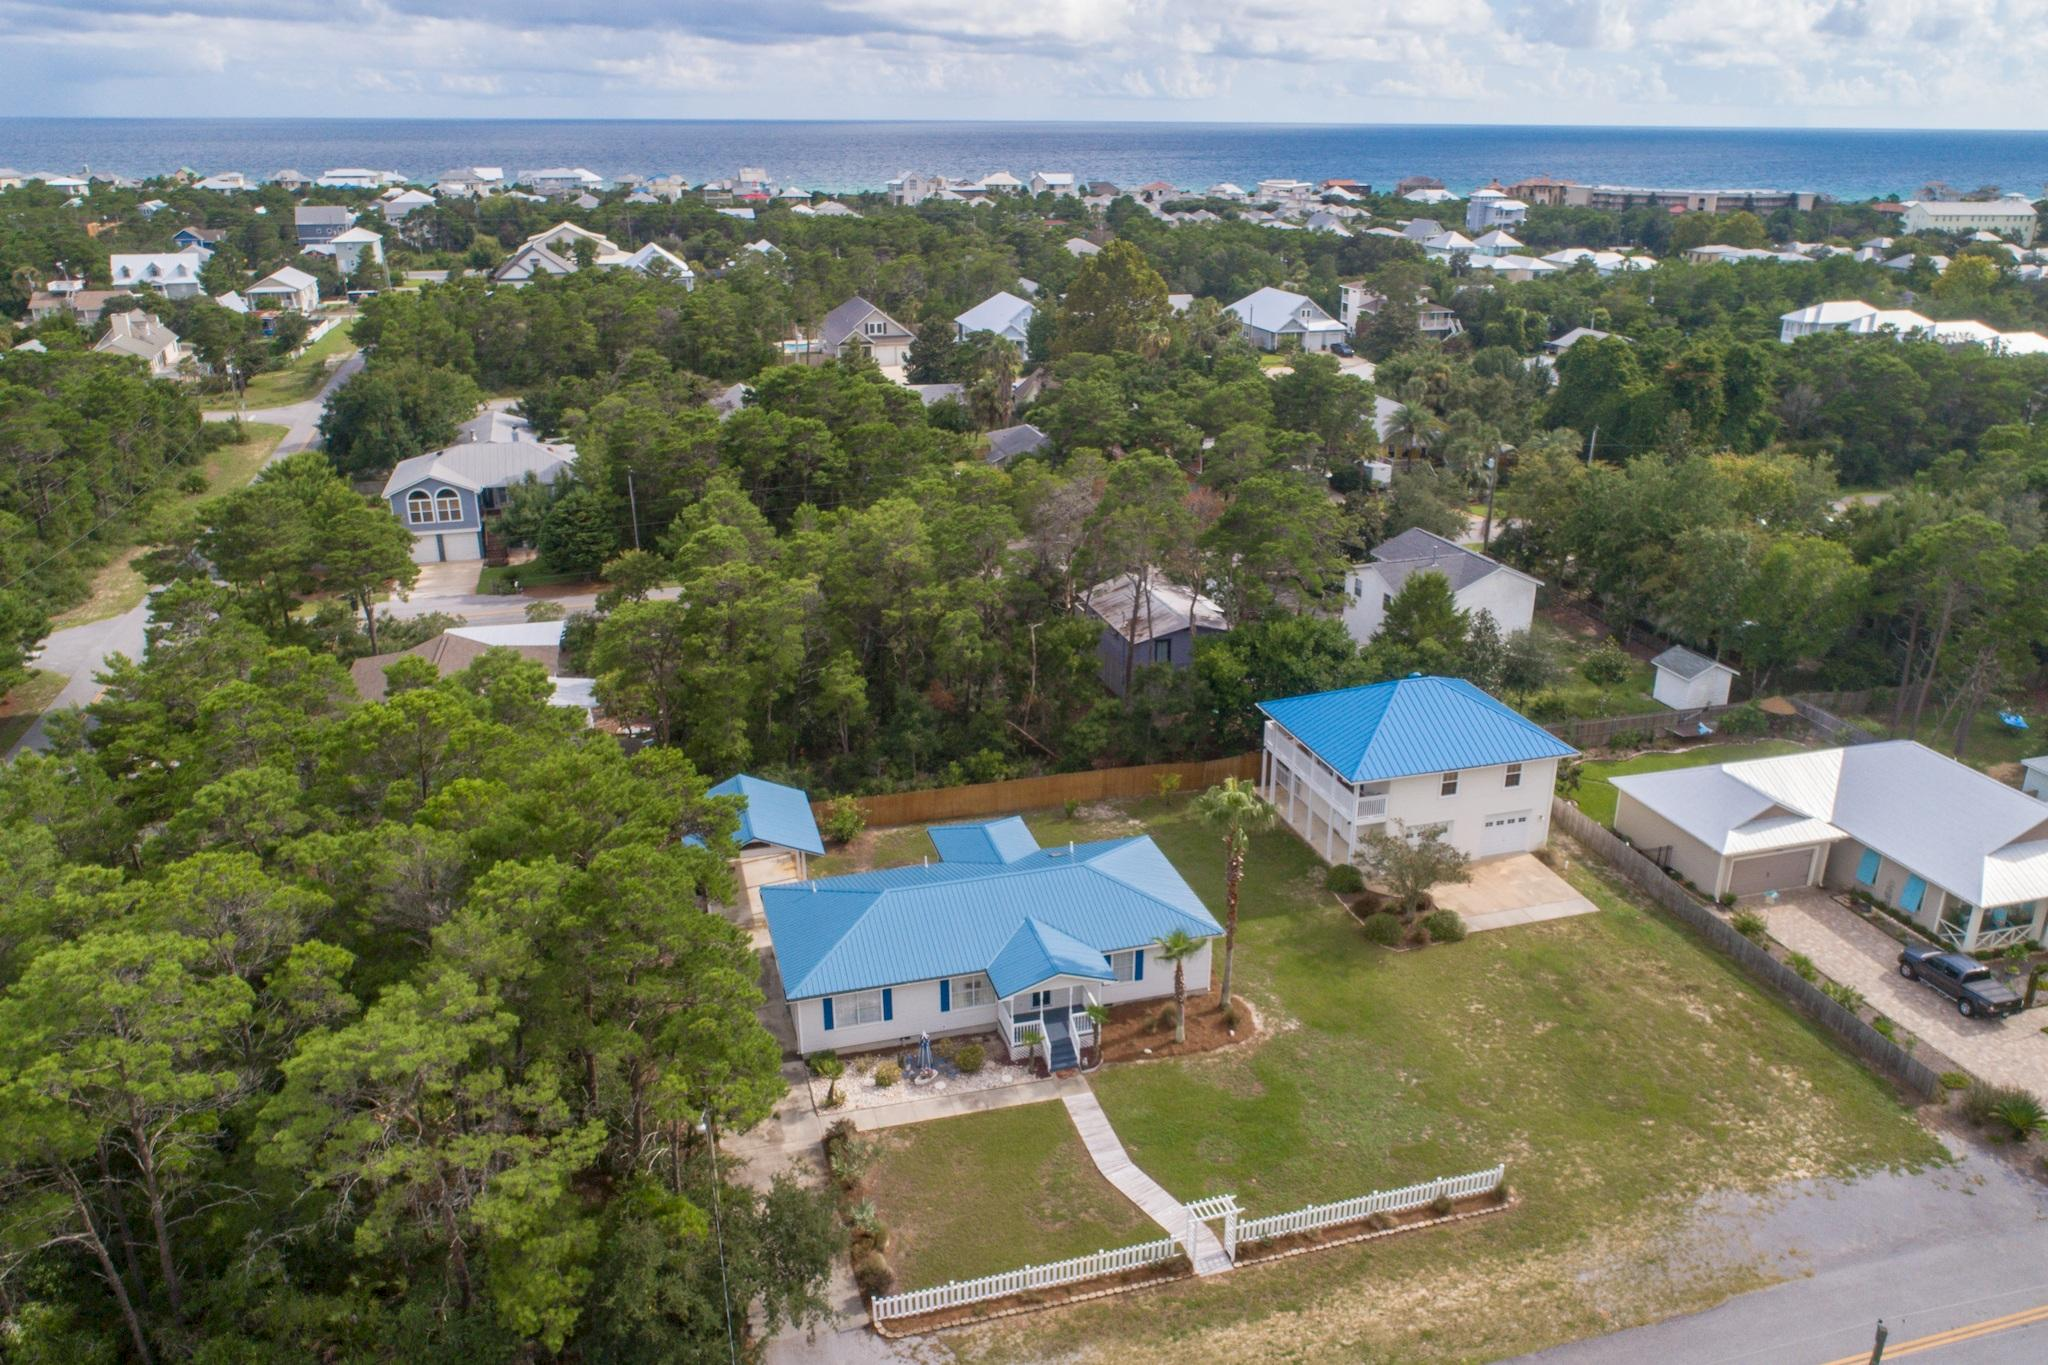 Incredible double lot in the desirable community of Gulfview Heights within half a mile to the beach! This idyllic home has a charming Florida feel, with a 3-bedroom main house and 1-bedroom carriage house over a 2-car garage. There is also room for an additional home in front of the carriage house. It is rare to find a double lot available in the 30A area. This lot totals 0.378 acres. The main house features 3-bedrooms and 2-baths totaling 1,796 sq. ft. and the carriage house is a 1-bedroom, 1-bath totaling 900 feet, however, the 2-car garage also offers an additional full bath and is heated & cooled for a total of 2,184 sq. ft. With welcoming landscaping and a newly painted covered front porch you feel at home. This is a fantastic private oasis for full time living or the perfect rental! Both properties have a new metal roof (2015) for that classic Florida beach cottage feel and the white picket fence welcomes you at the entry. For the main home, the interior features beautiful craftsman details like built-in shelving & cabinetry, stunning Georgia pine wood floors throughout the living area and master bedroom, vaulted ceilings and light cove for a display area. The living area is open to the dining area and a spacious kitchen. The kitchen has ample storage with hardwood cabinets, granite tiled kitchen countertops and breakfast bar for casual dining. Appliances are in great shape and there is a built-in desk for convenience. Access the screened-in back porch off the dining area, which is a great place for outdoor dining and relaxation. There is an added wood ramp walkway for easy access to the back porch from the exterior as well. The backyard view is tranquil and there is an expansive lot where you can expand your entertainment space or even add a pool!   This home is unique for the amount of storage as each bedroom features a walk-in closet and there is a large laundry room with a full size washer & dryer that conveys. The master suite is exceptional with the beautiful pine wood floors, trayed ceiling and view of the front yard. There is an en-suite bathroom with an updated shower featuring natural pebble stone flooring and backsplash. There is also a double vanity and the walk-in closet. There are two spacious guest bedrooms with a shared guest bath with a skylight for great natural light and a shower/tub combo. For this compound there is plenty of parking down the long driveway and also a covered carport and enclosed storage area for all of your beach gear. There is even kayak storage outside to start that outdoor lifestyle.   The carriage home is located above the 2-car garage and was built as an addition in 2004. This space is inviting with an open living area with wood floors, a full kitchen & dining area with tile floors and a spacious master bedroom and full bathroom with double vanity and shower/tub combo. Relax on the covered balcony and take in the tranquil setting & palm trees surrounding you. The 2-car heated & cooled garage is a major plus and an easy spot to create a workshop as there is plenty of space. Store your bikes and beach toys easily and even rinse off that beach sand in the garage bathroom with a walk-in shower. The cost of living is also low here with no HOA fees and each home has its own septic tank. Your monthly public water bill is minimal as the irrigation system is on well water. This is truly a unique property that will not last long!   The location is prime in close vicinity to the beautiful emerald green waters of the Gulf of Mexico and beaches of South Walton, with the Gulfview Height beach access within reach. You are also close to Gulf Place - one of 30A's main entertainment hub's with an outdoor amphitheater offering live music during the summer concert series and great events throughout the year. Stop for your morning coffee at Sunrise Coffee, get your beach gear at the 30A store, rent a paddle board at YOLO Board and grab breakfast or dinner at La Playa and other dining spots. Everything you need is at your fingertips - what a convenience to get here by a quick bike or golf cart ride. The Long Leaf Trail Head is also just a couple of blocks away where you can enjoy nature trails and beautiful pines throughout the state park. This is a main spot for biking and hiking. Your coastal paradise & beach lifestyle awaits!